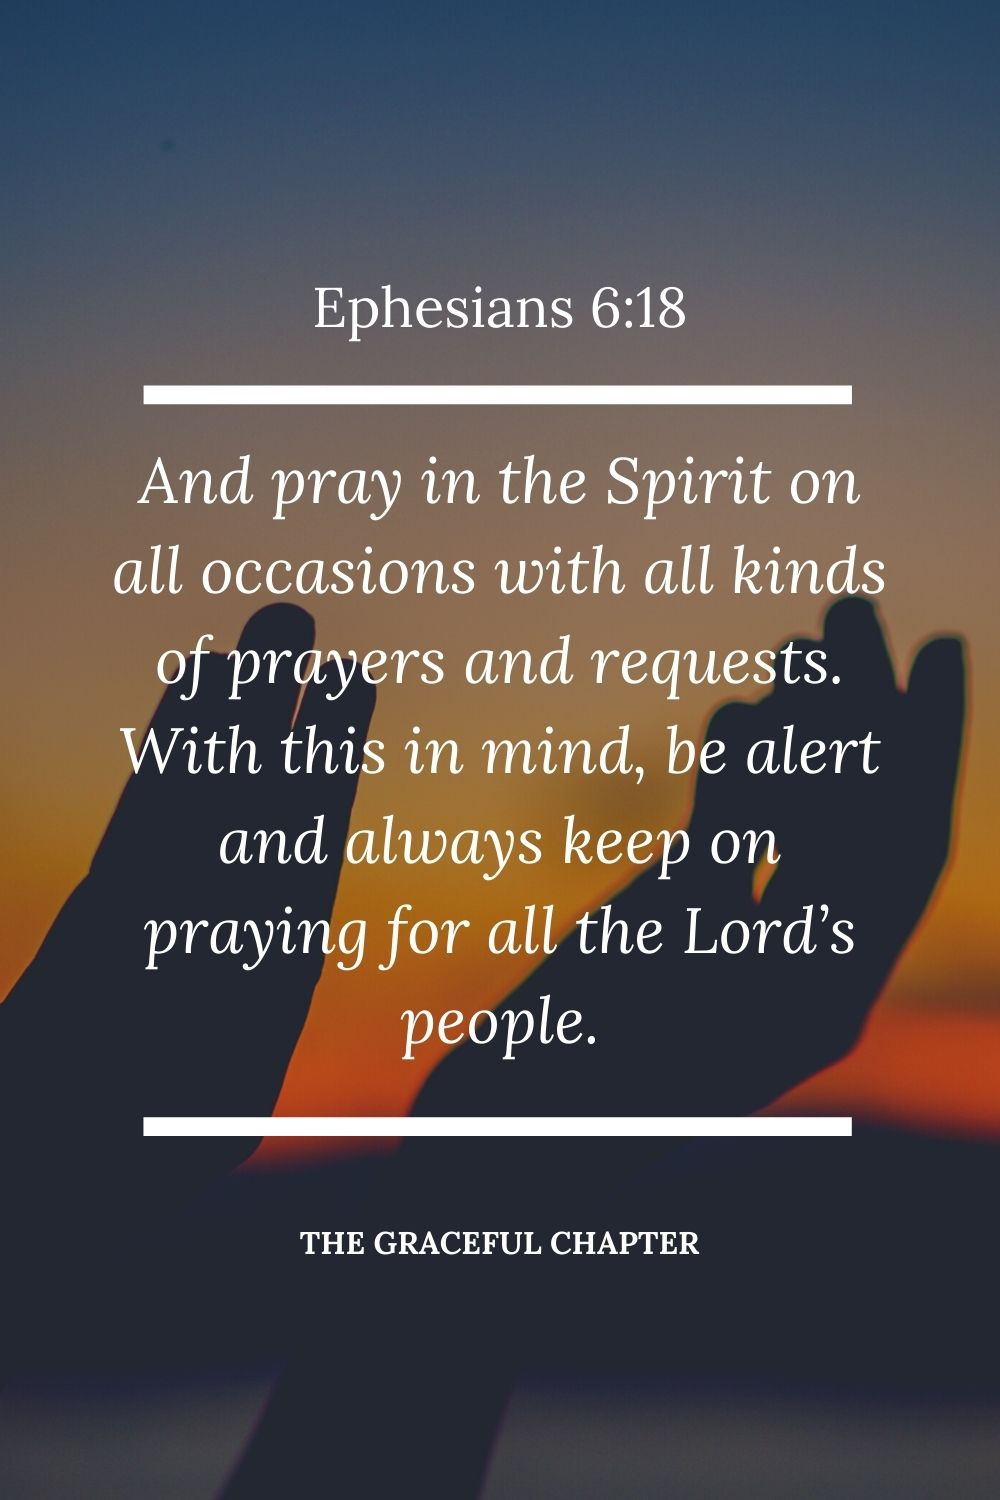 And pray in the Spirit on all occasions with all kinds of prayers and requests. With this in mind, be alert and always keep on praying for all the Lord's people. Ephesians 6:18